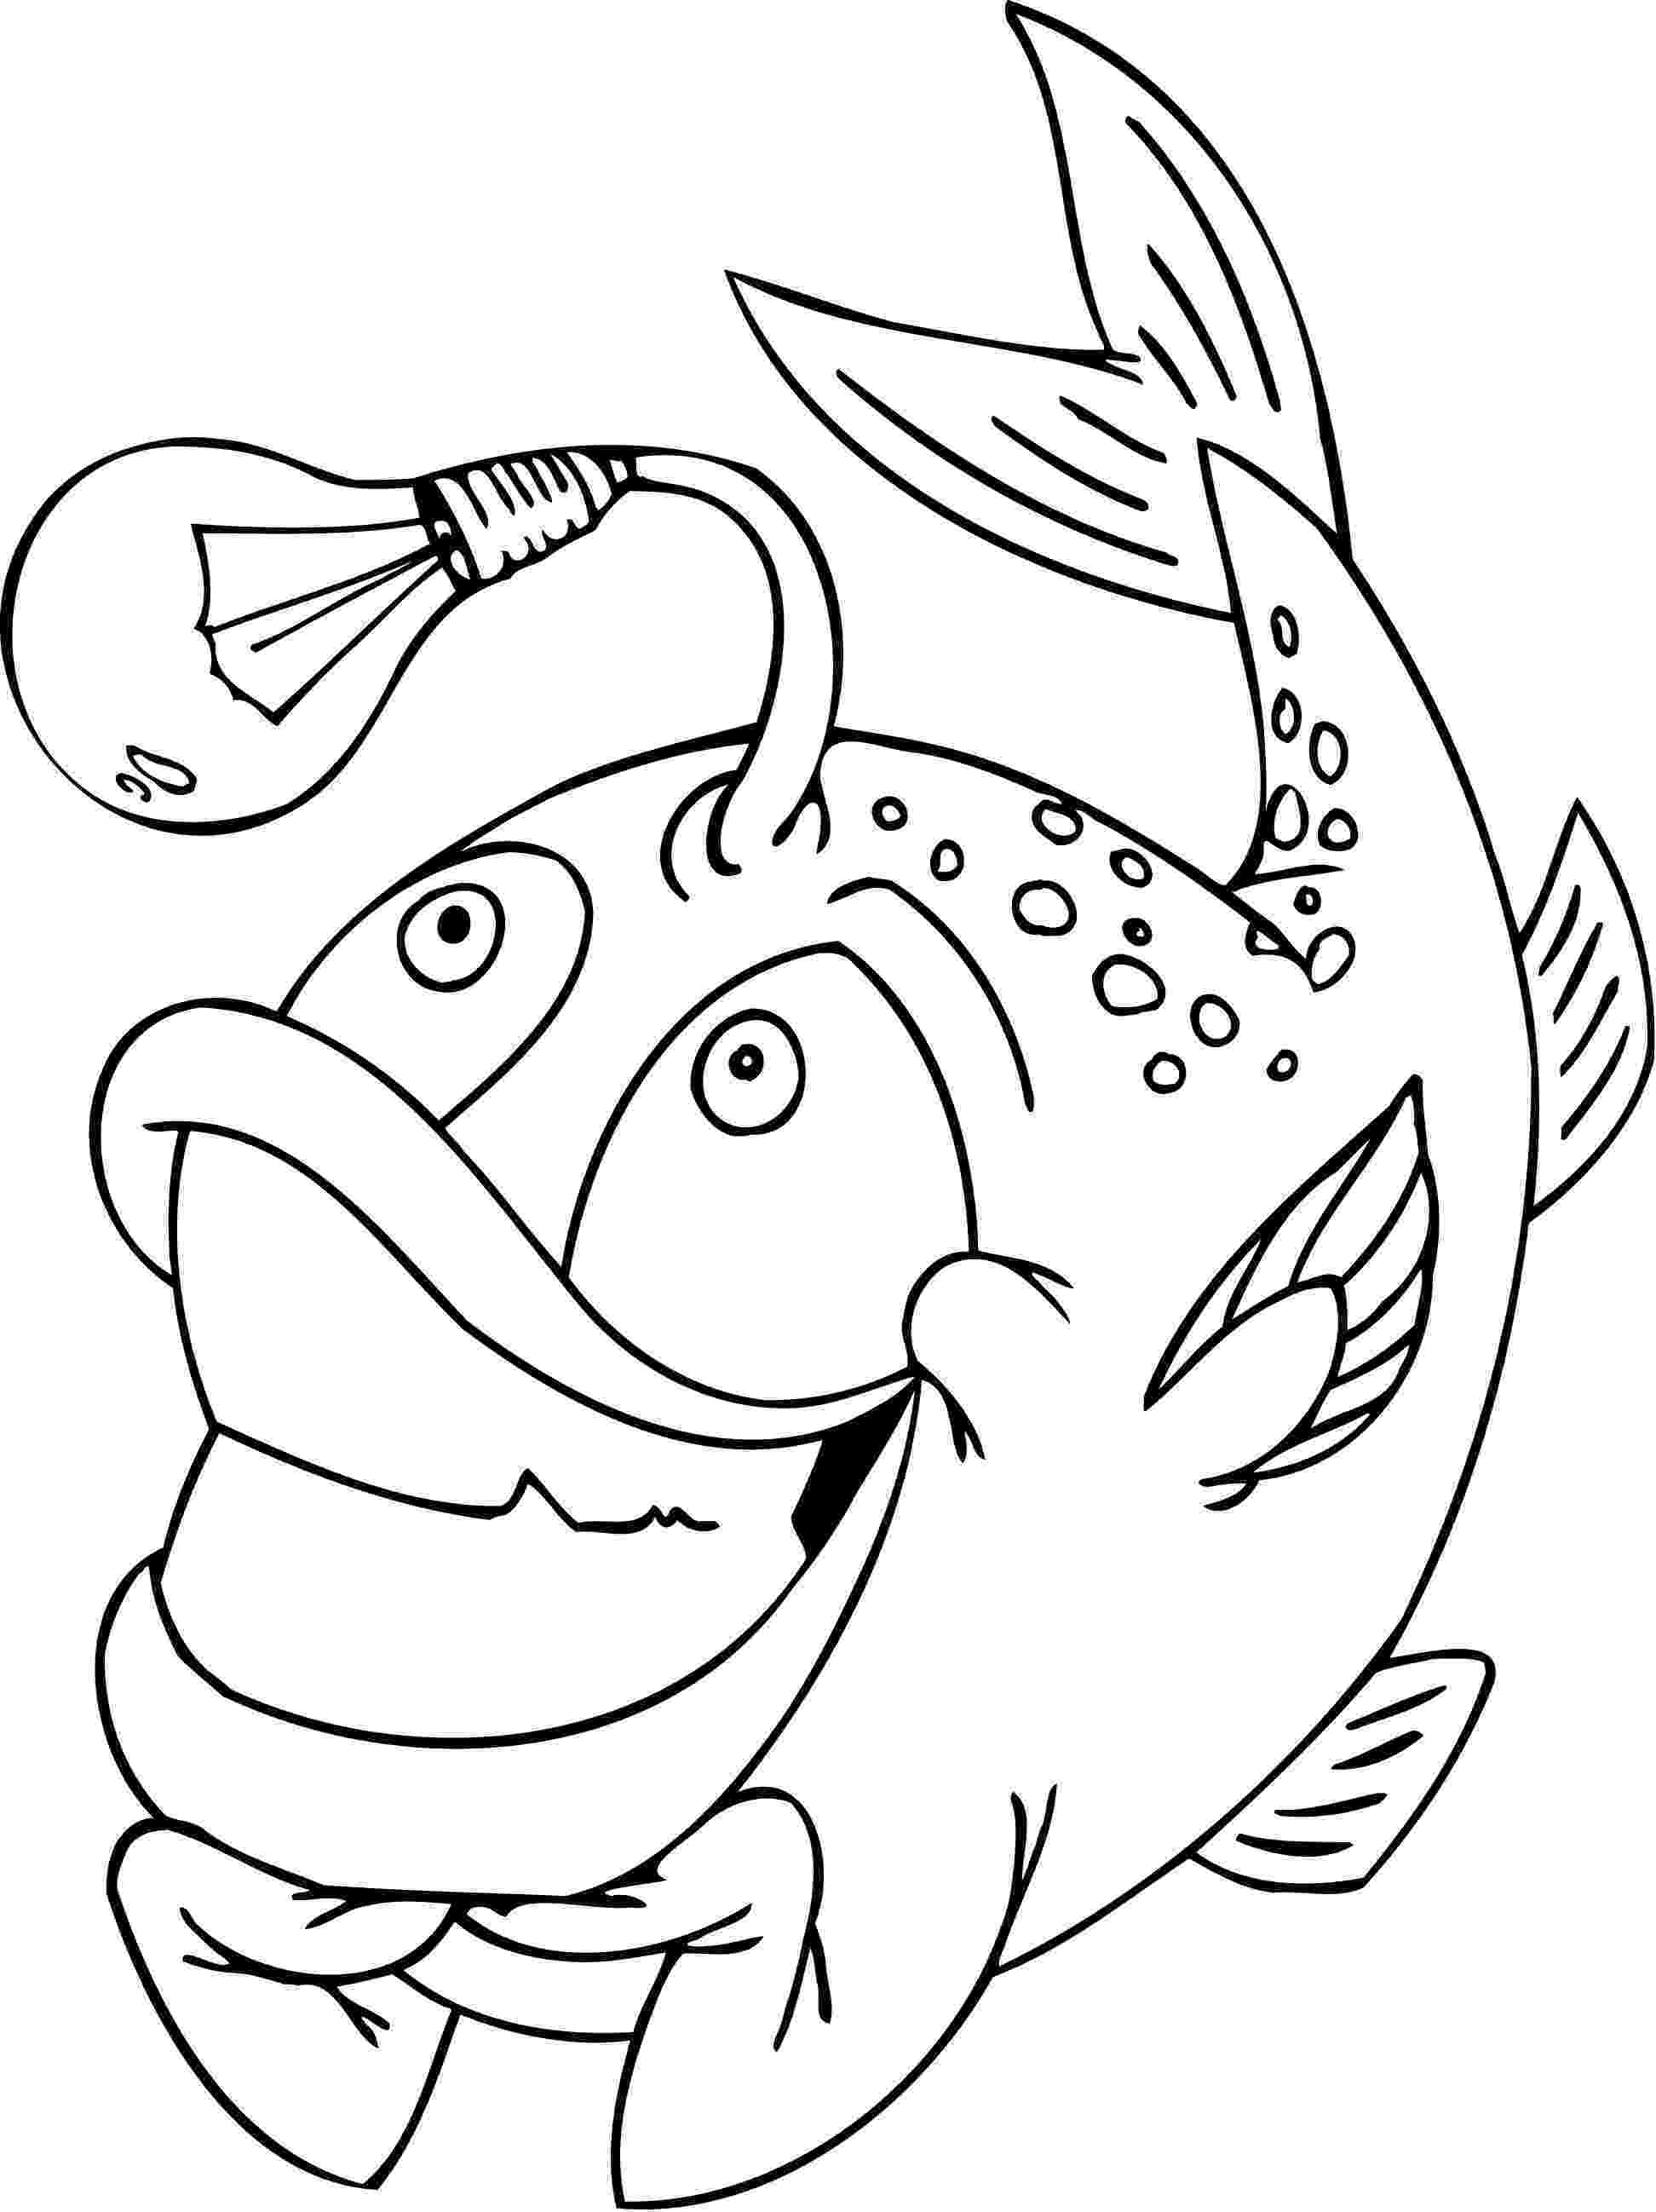 awesome coloring pages for kids super mario coloring pages free printable coloring pages kids pages coloring awesome for